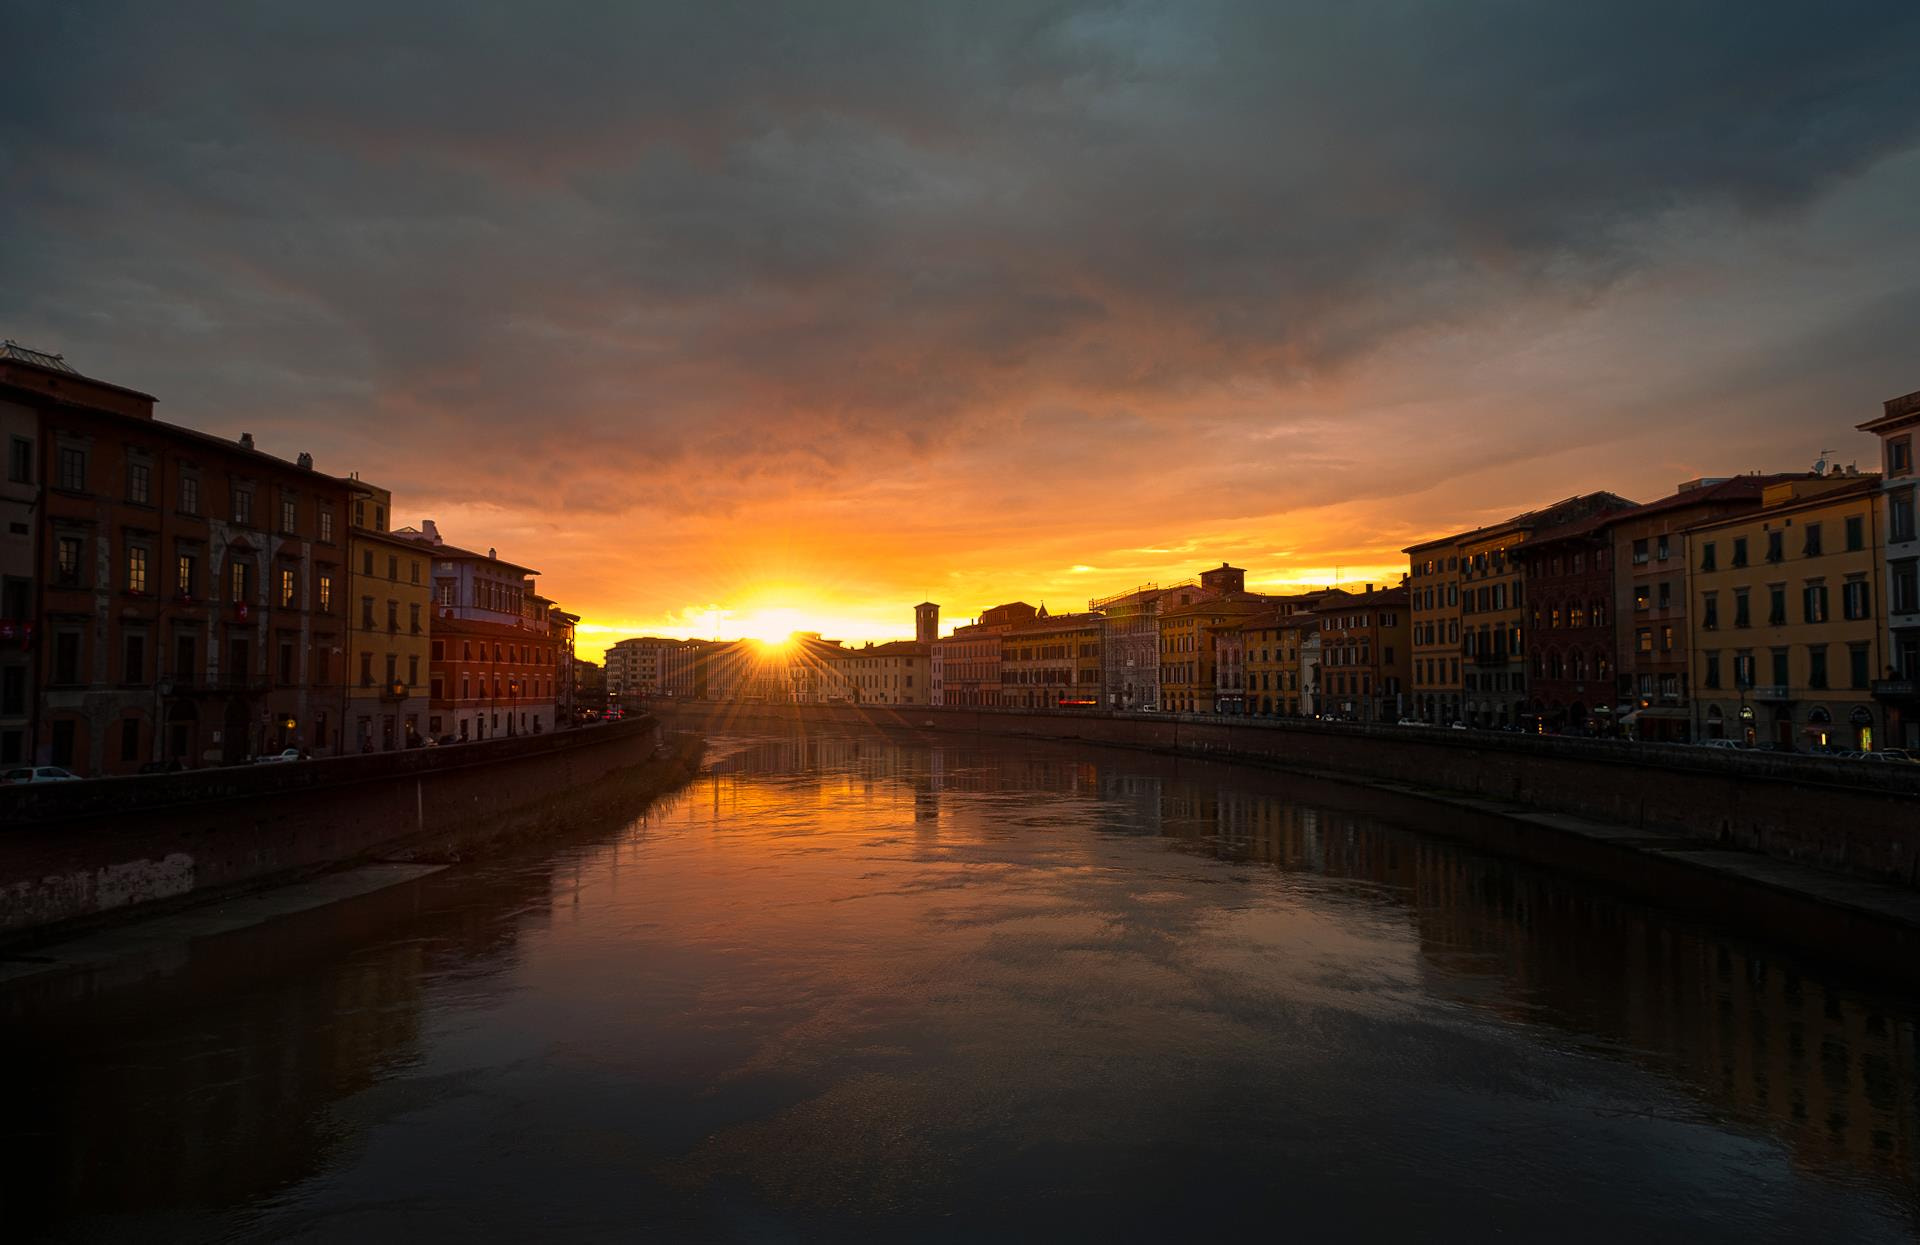 Photograph Pisa at sunset by Marco Sfrecola on 500px